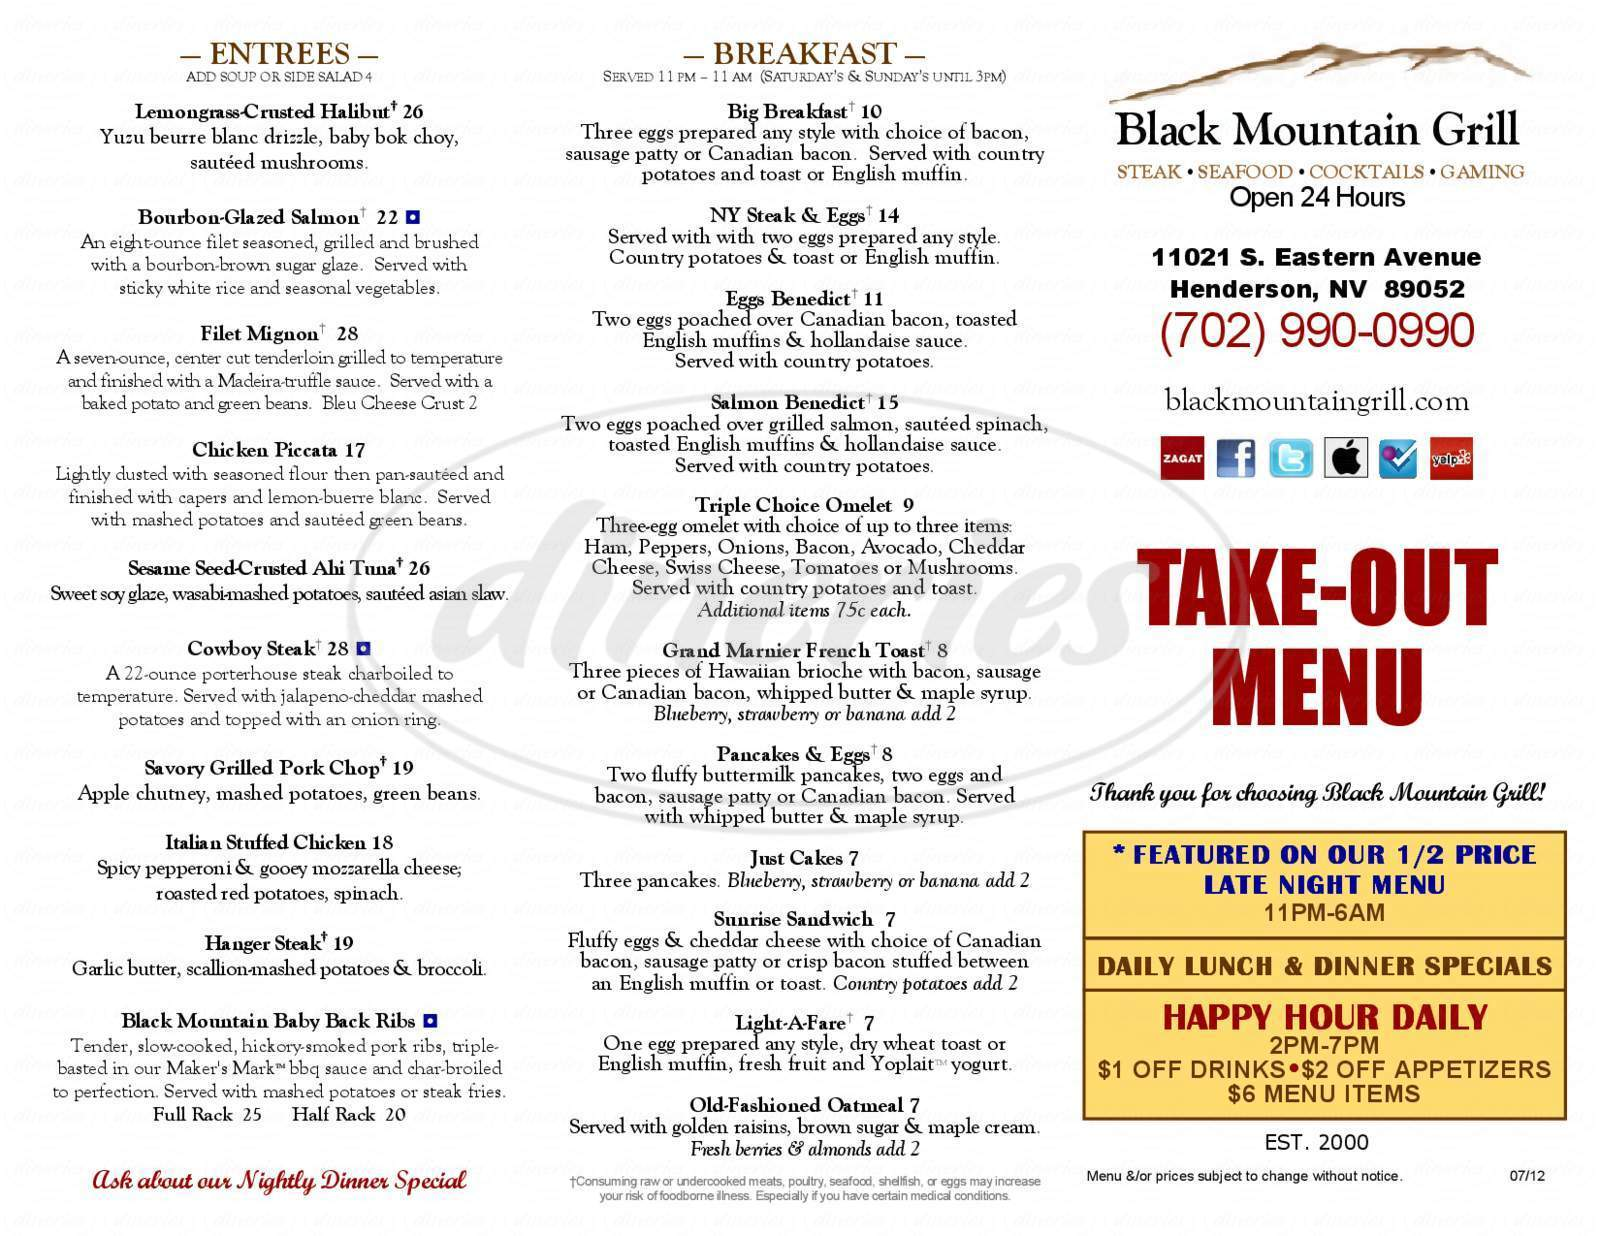 menu for Black Mountain Grill